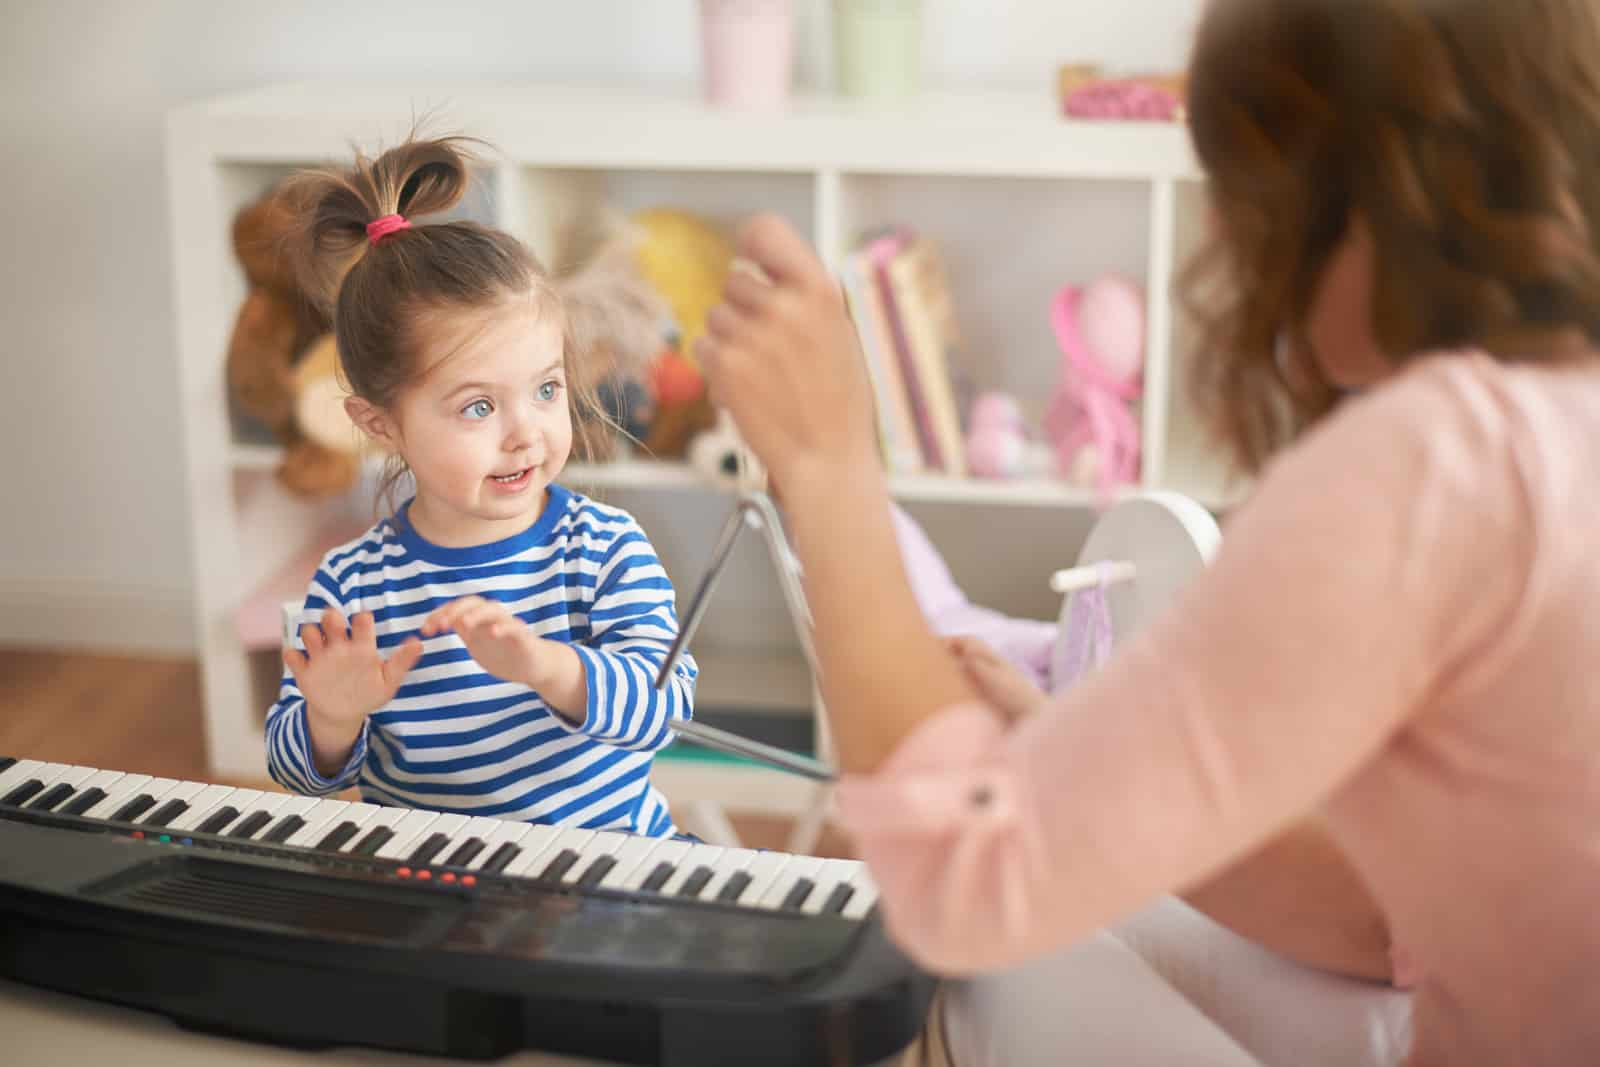 mom and daughter playing piano, kids activities at home